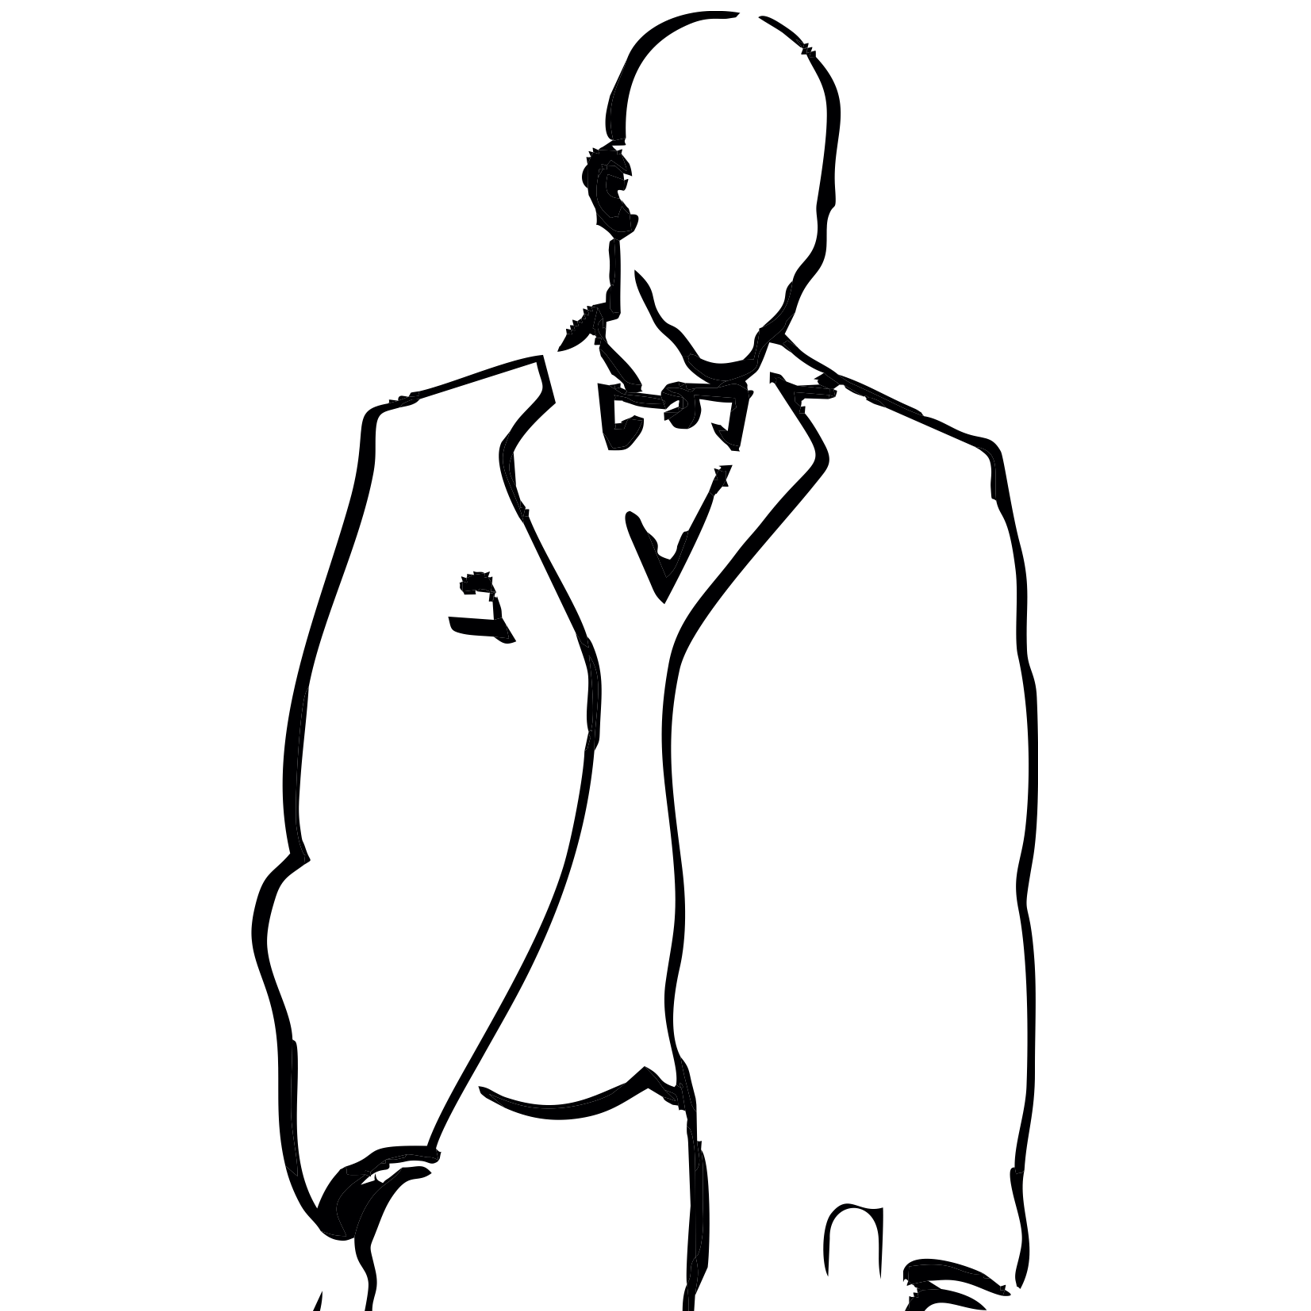 Best Man Clipart 20 Free Cliparts